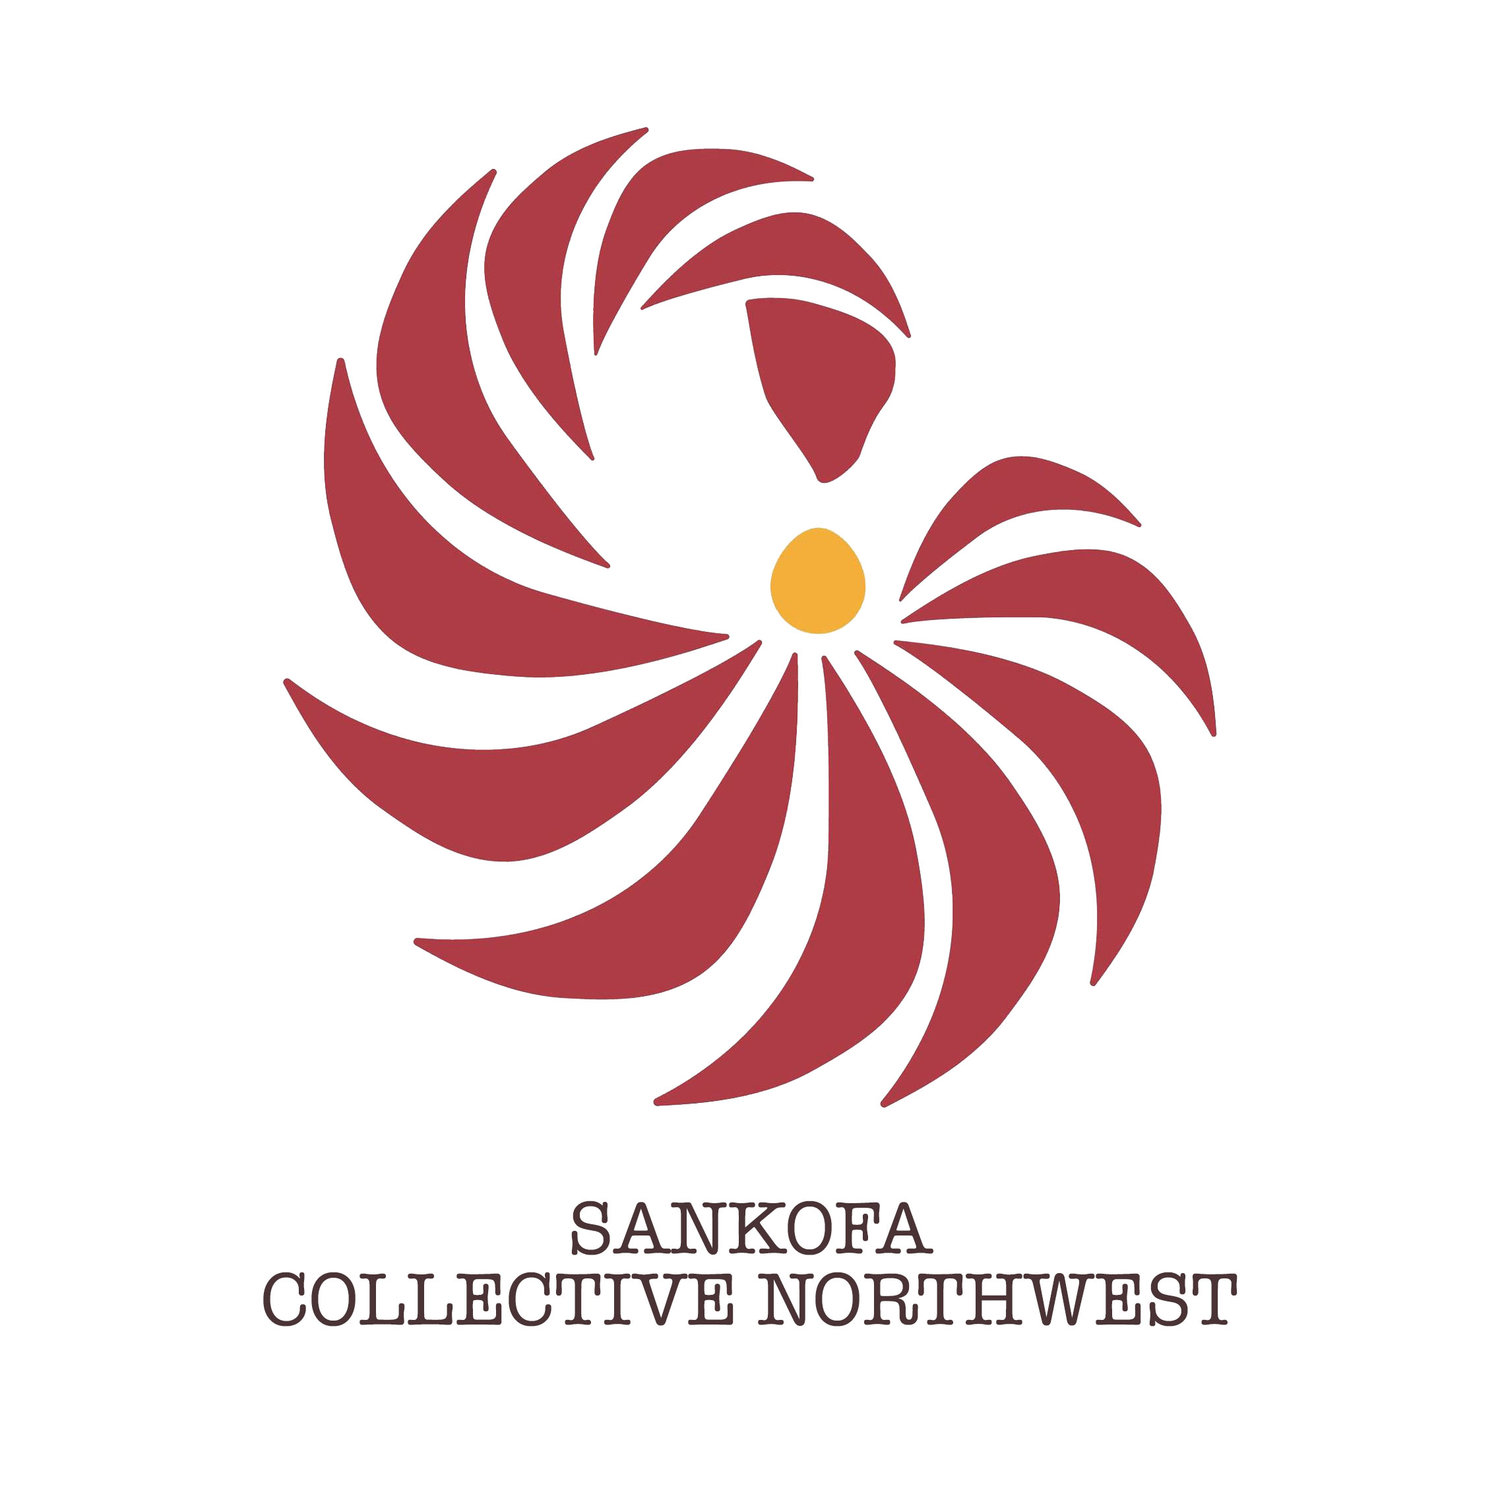 Sankofa Collective Northwest